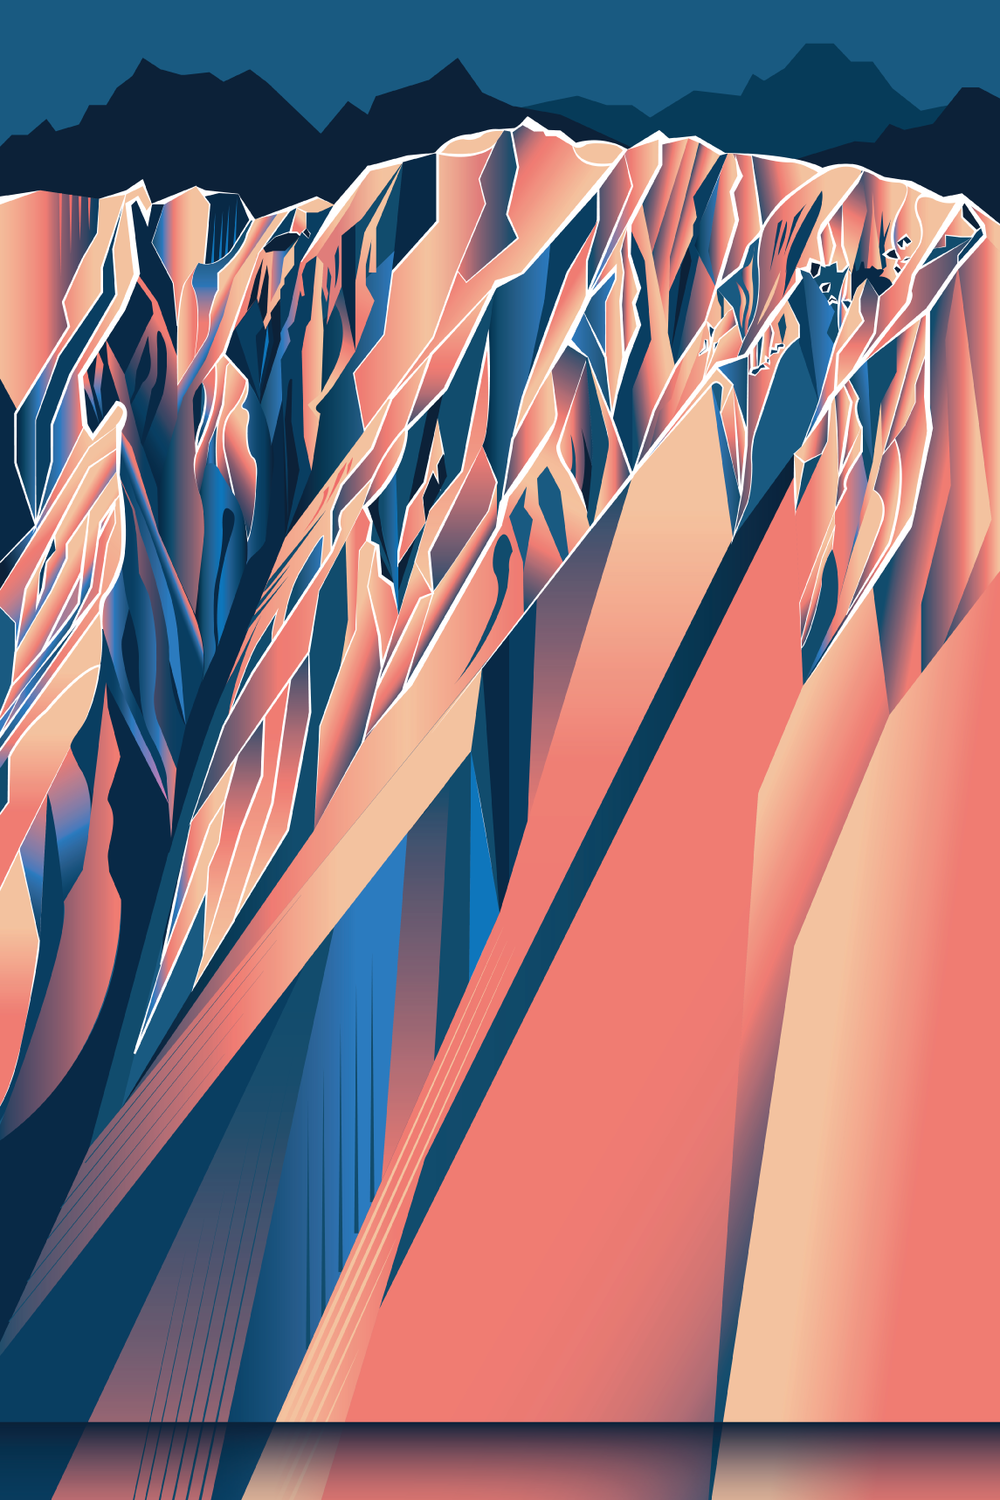 Meg_Smith_Art-Alpen_glory.png